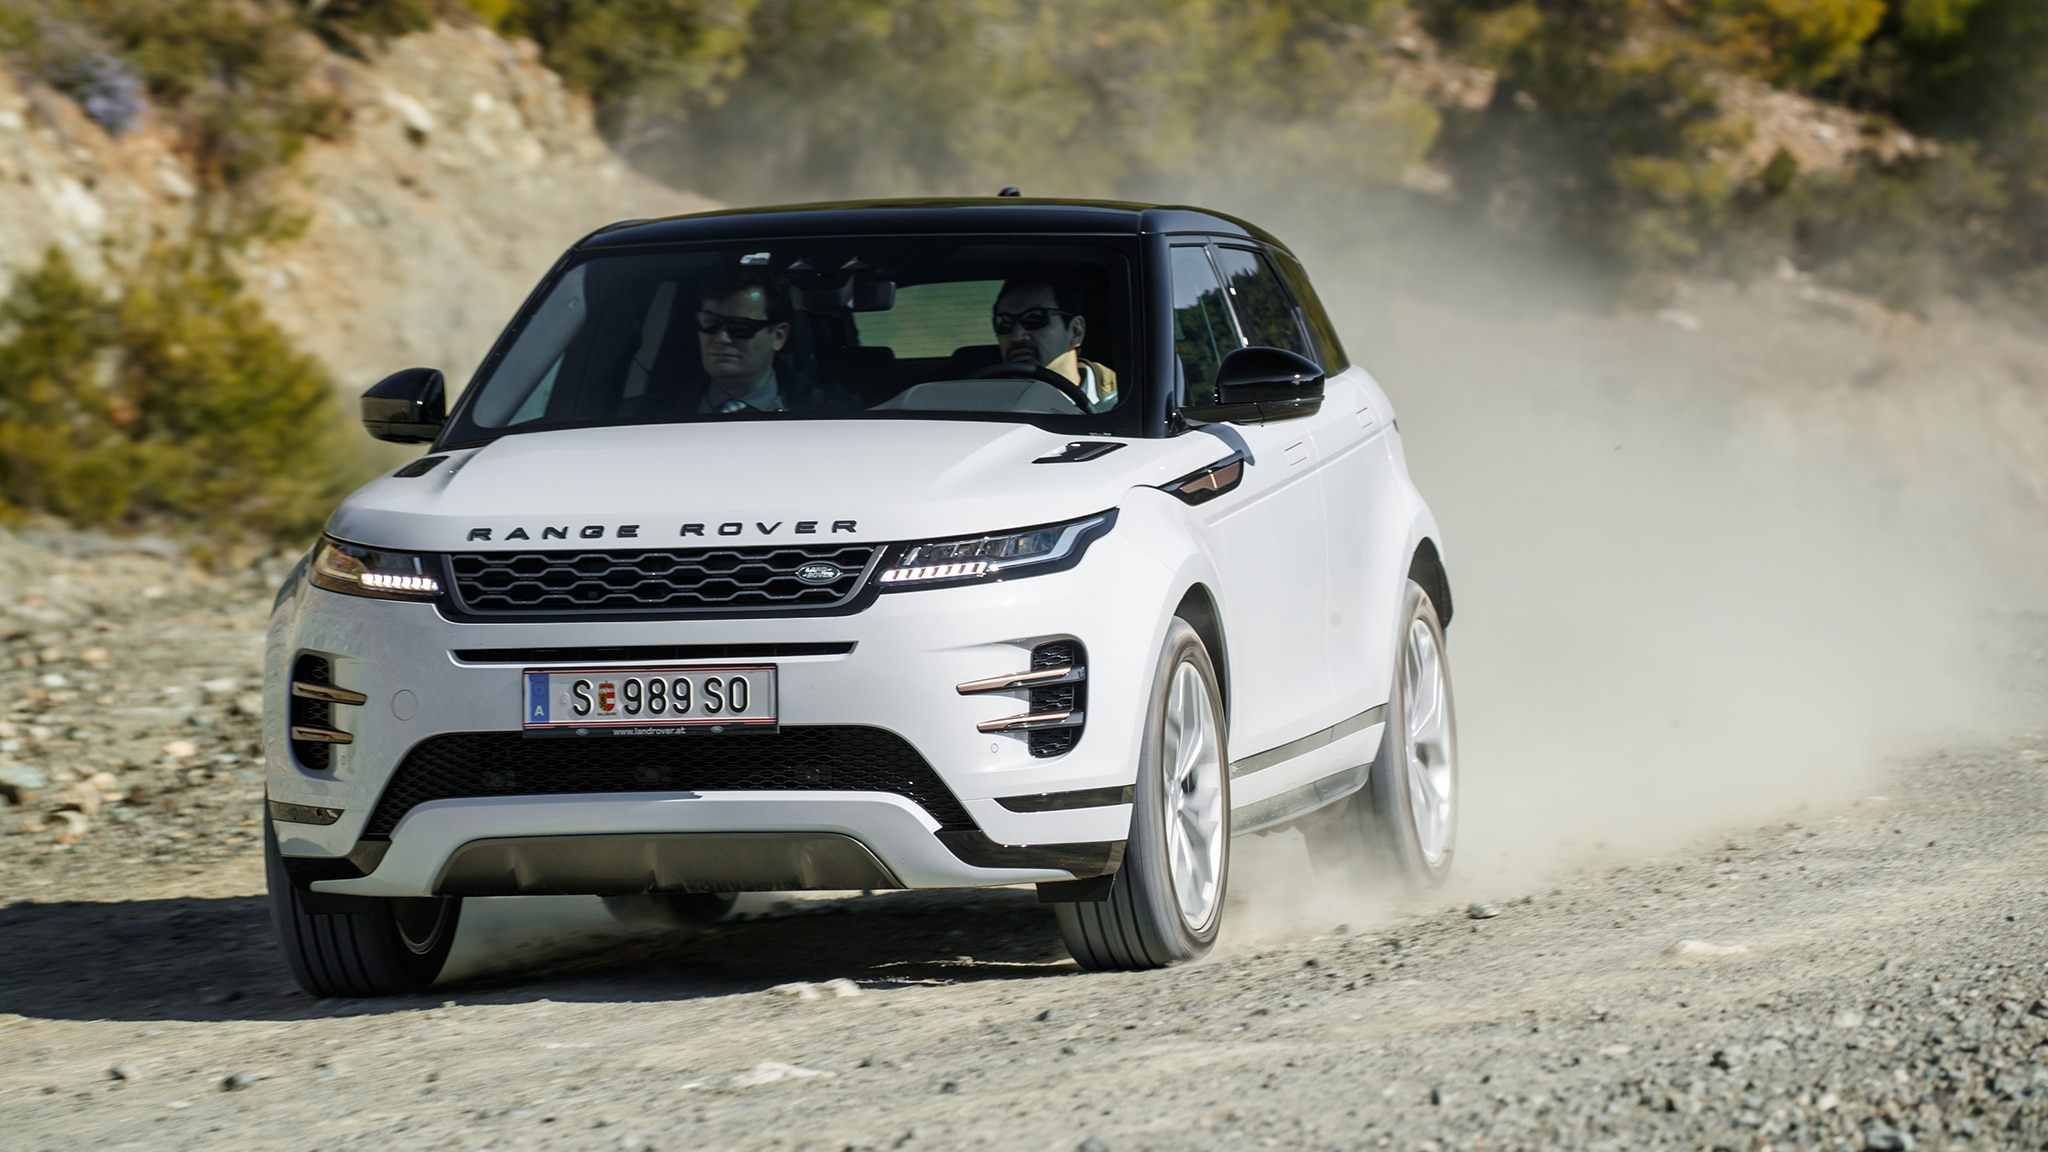 Range Rover Evoque First Drive: Second Time's the Charm | Automobile